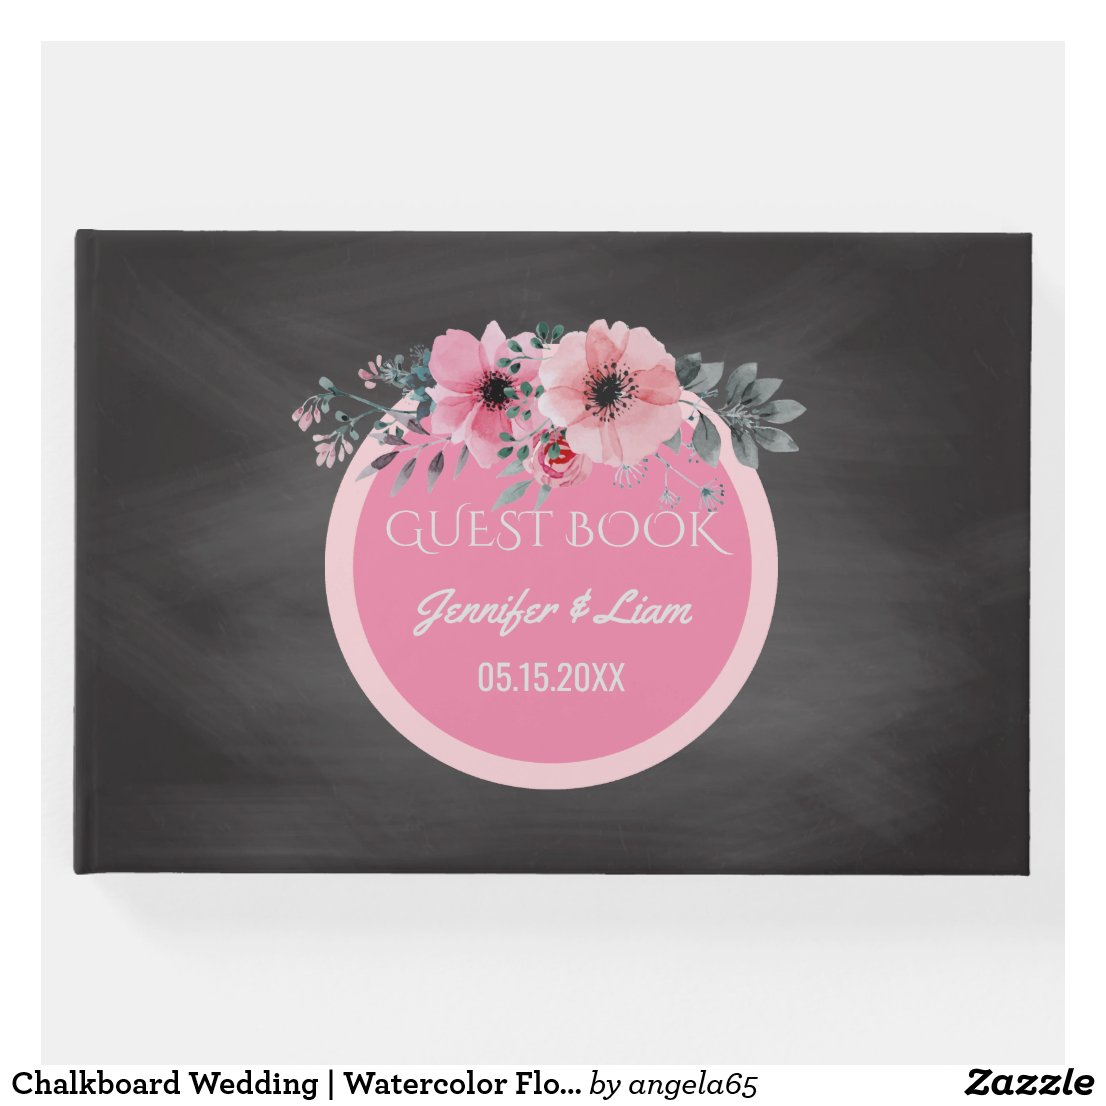 Chalkboard Wedding | Watercolor Floral Monogram Guest Book